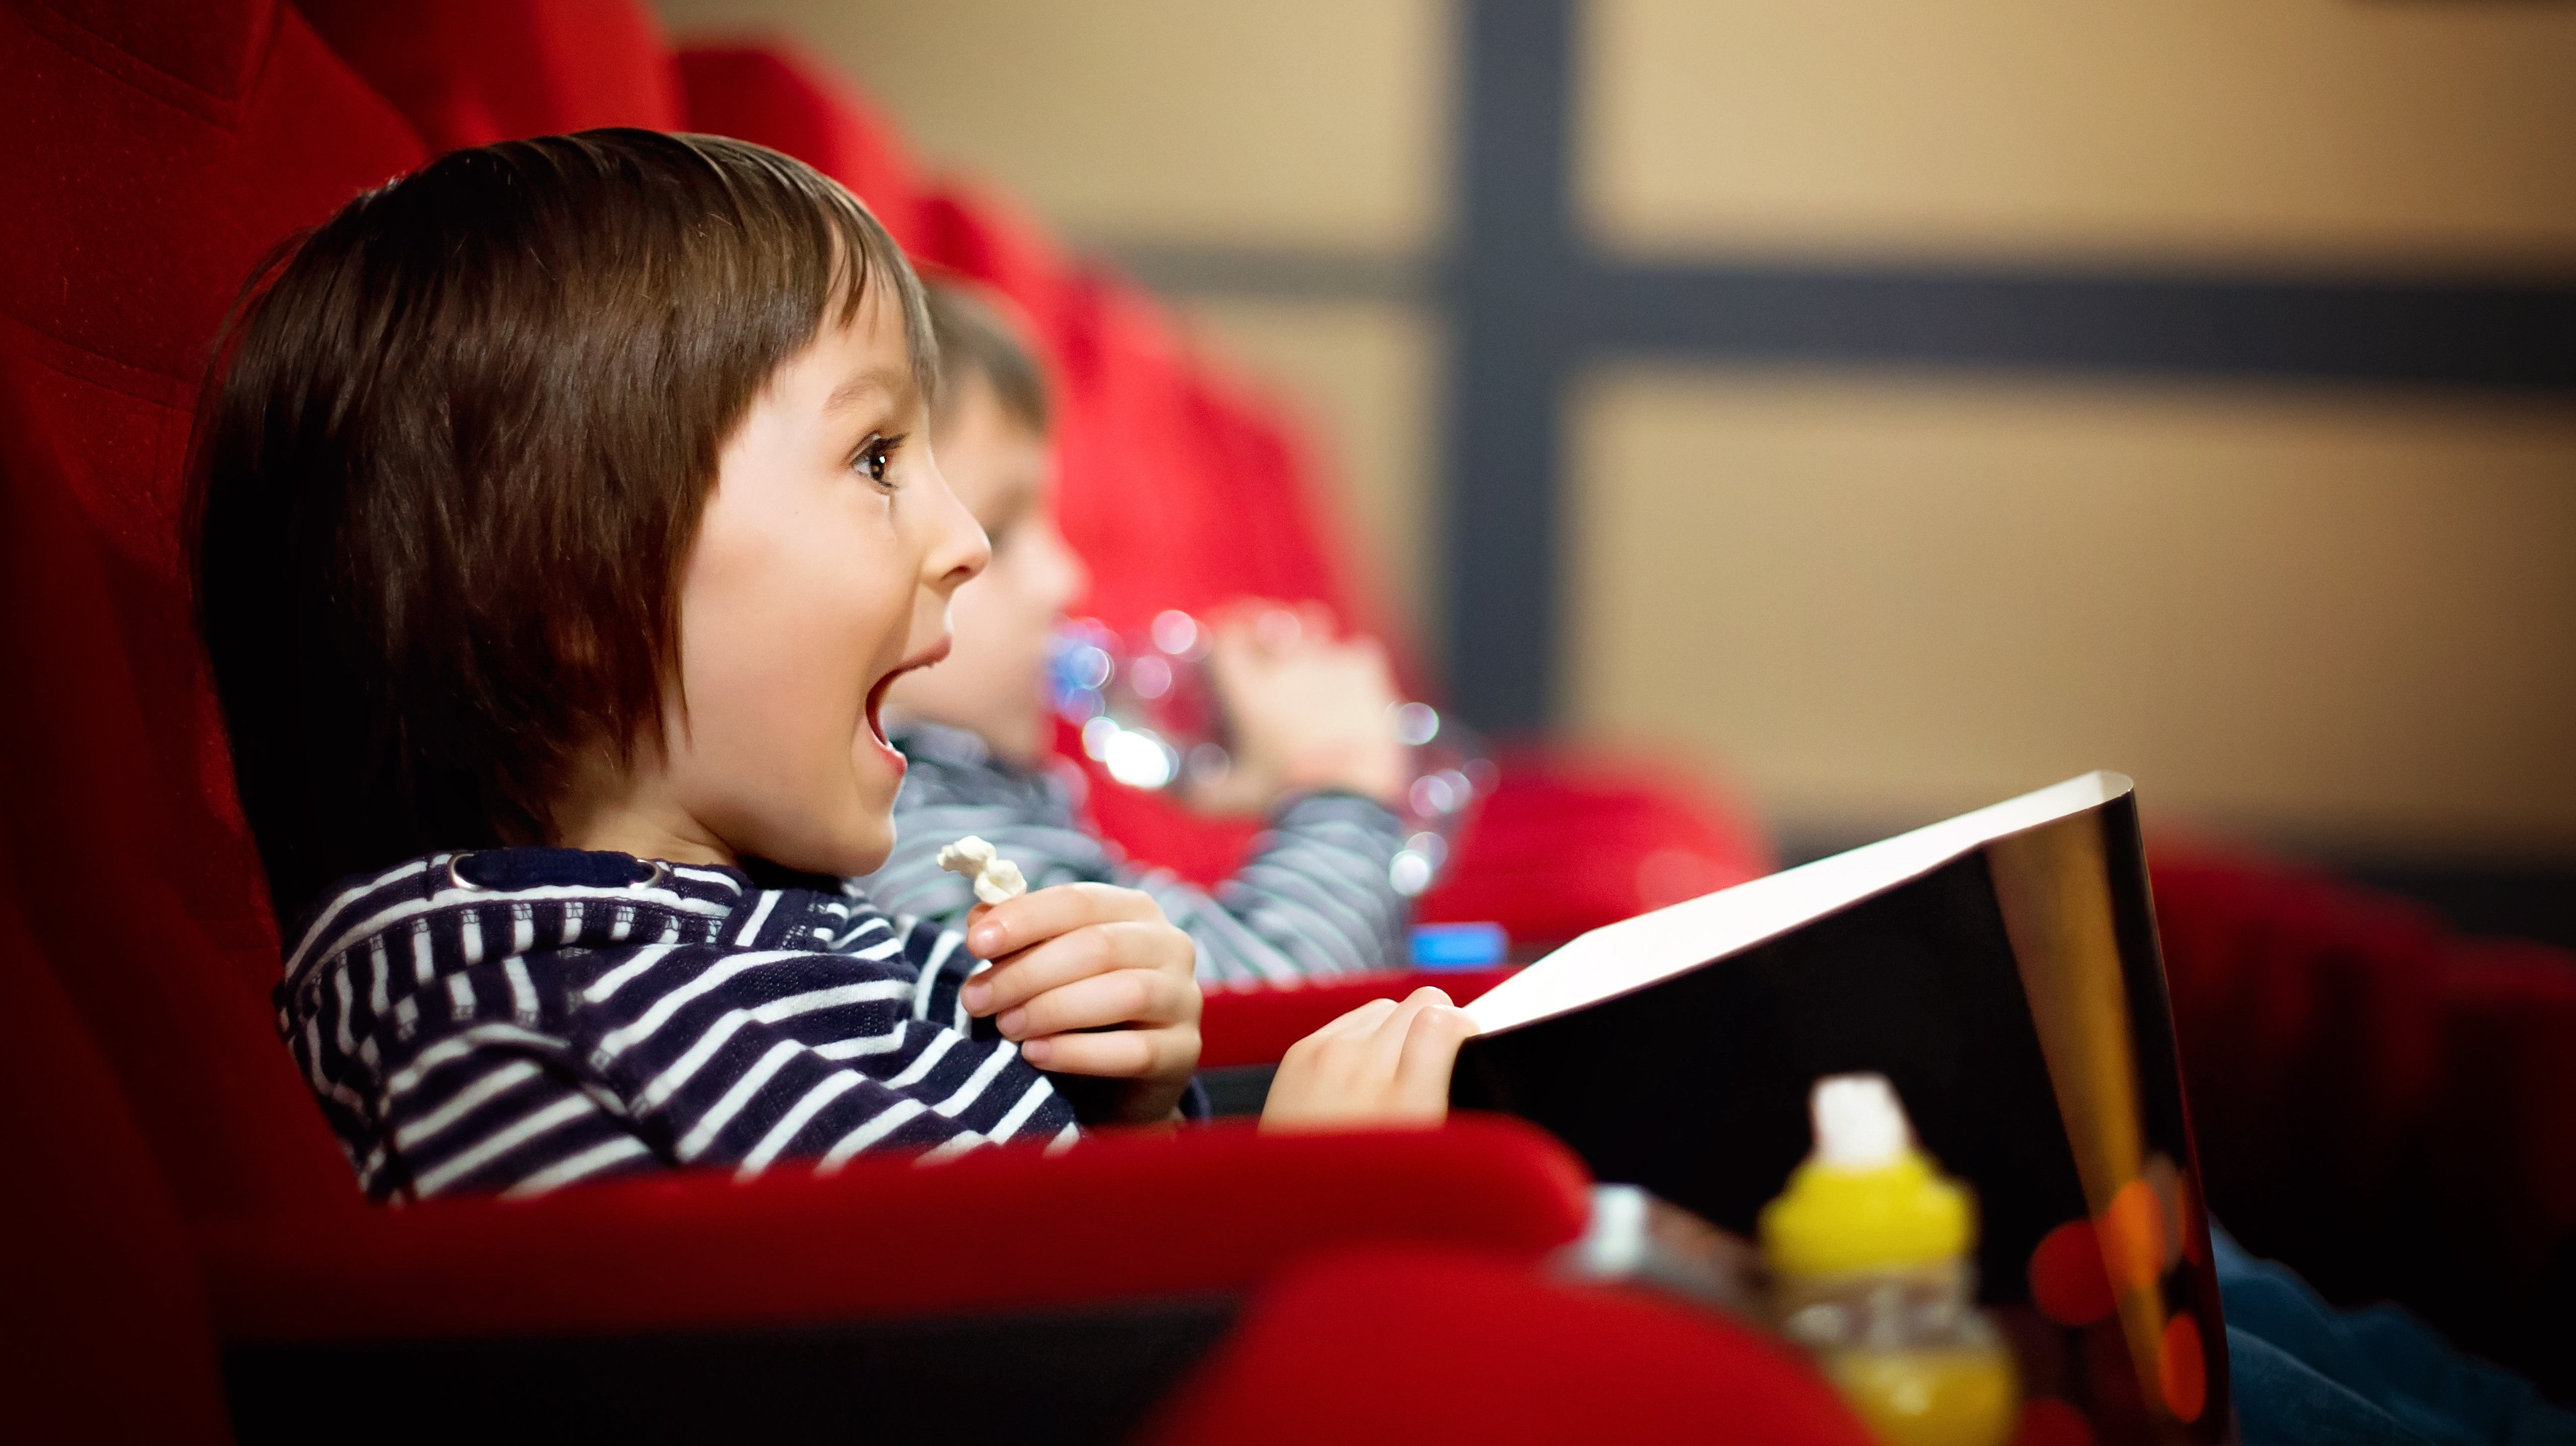 How To Have A Sensory-Friendly Movie Theatre Experience